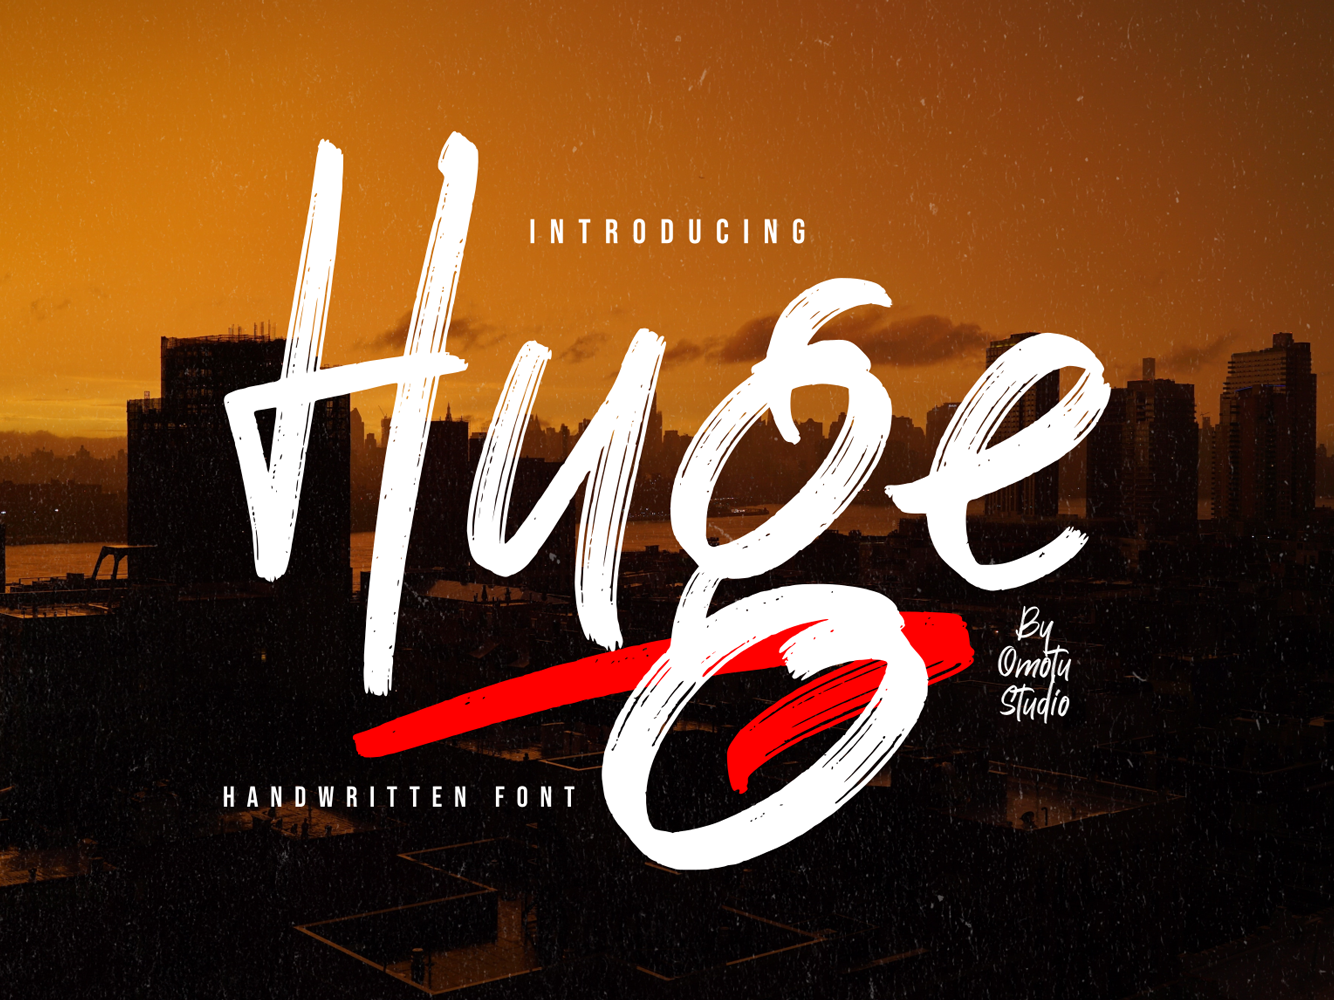 Huge - [FREE FONT] logo brand identity brush font social media posts apparel watermark product design product packaging logos advertisements lettering handlettering caligraphy typography branding